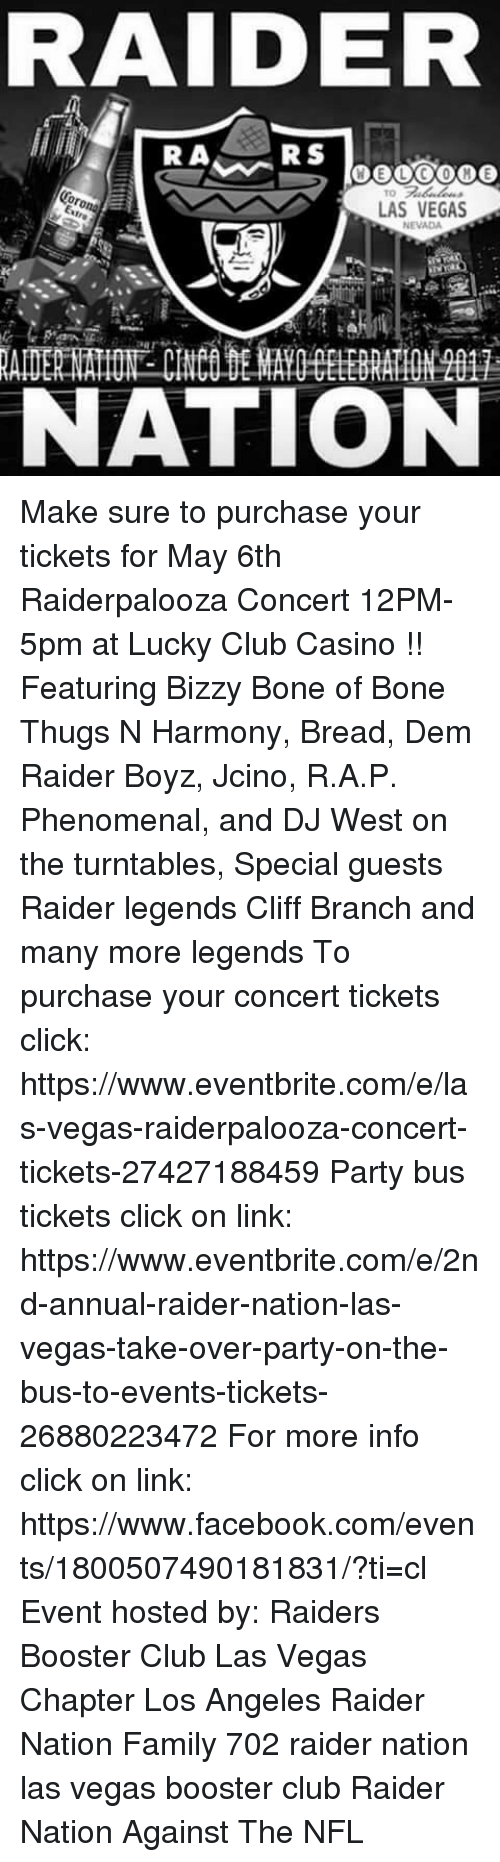 raider r s r a las vegas nevada nation make sure to purchase your